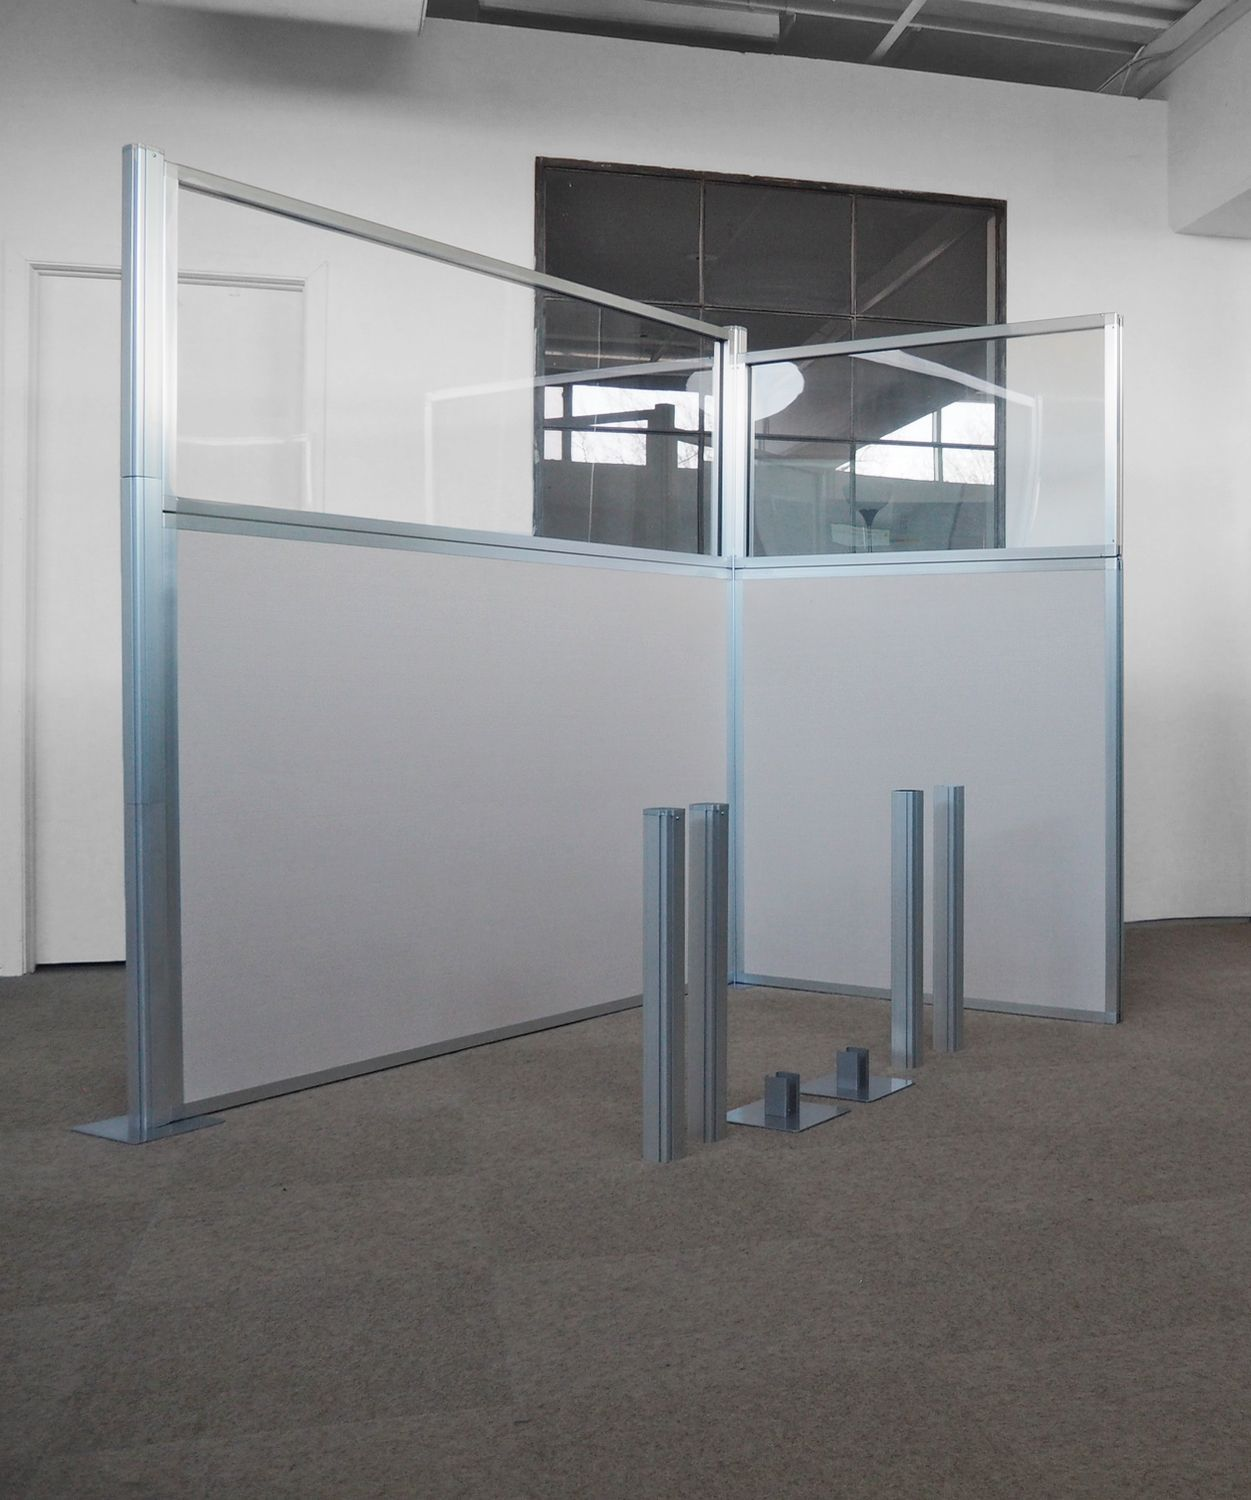 diy office partitions. Hush Panel DIY Cubicle Partitions Require No Tools \u2013 Simply Slide The Panels And Posts Together To Create Your Own Workstation Cubicles. Diy Office W